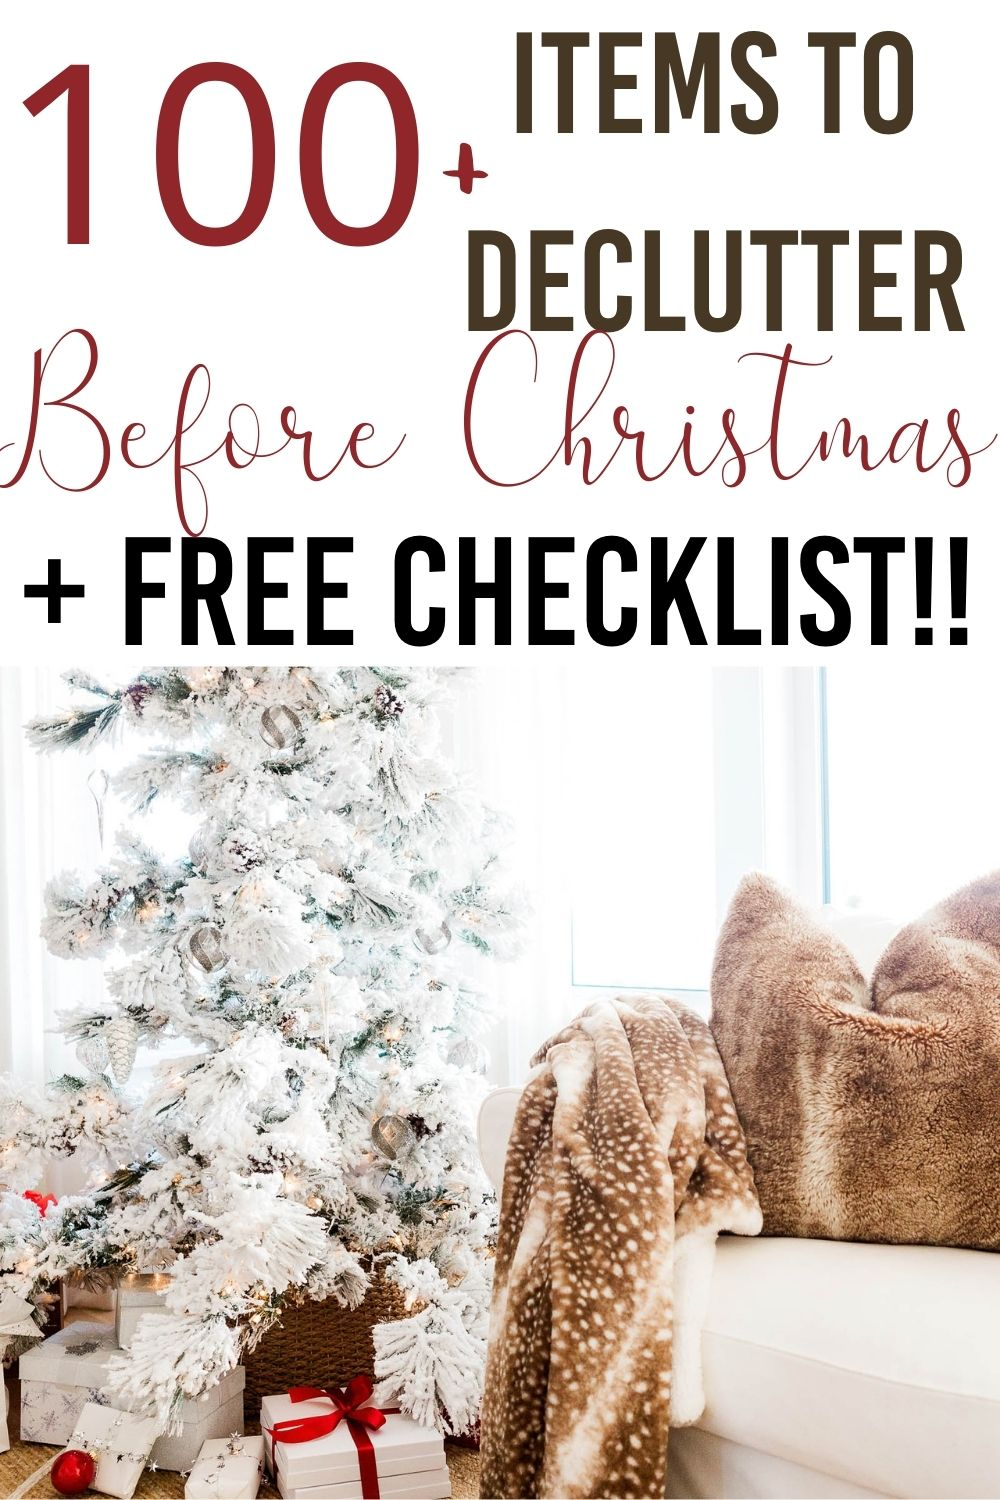 The phenomenon of removing clutter or mess from a place and to later organize and prioritize the rest is called Decluttering. Let me share how to declutter for the holidays #holidays #declutter via @homebyjenn